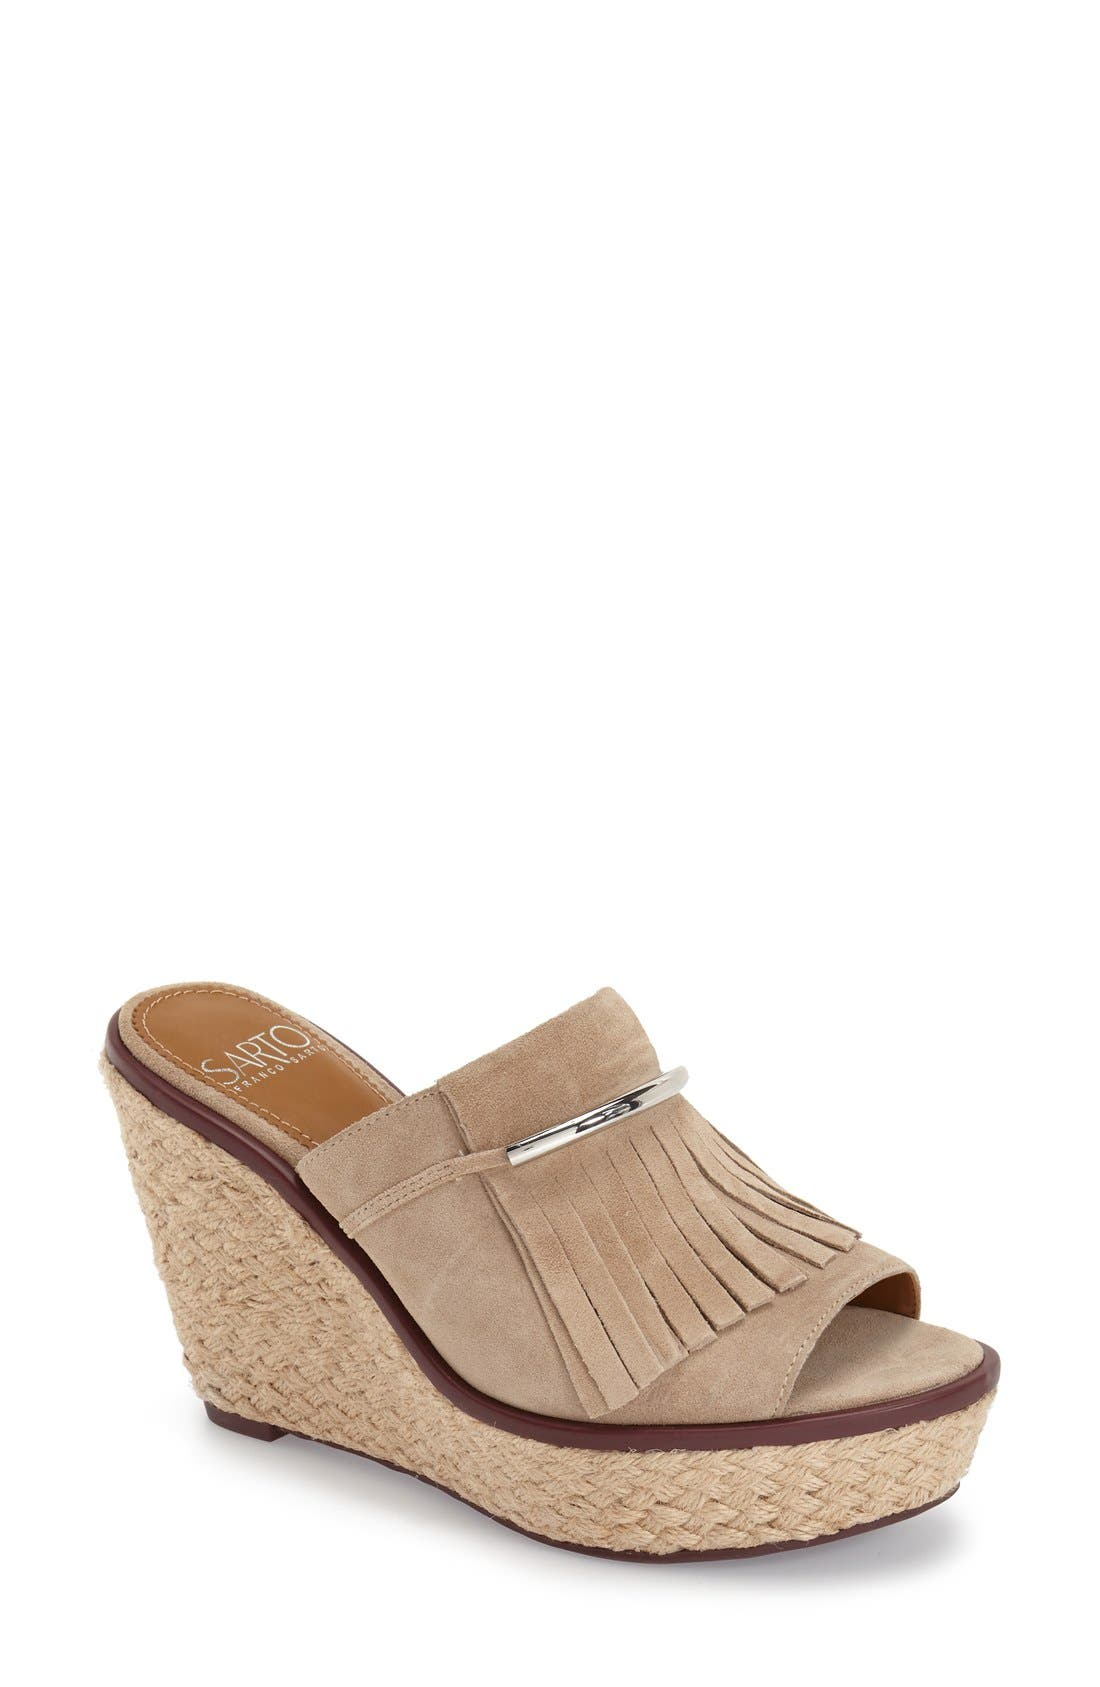 'Candace' Wedge Mule,                         Main,                         color, Soft Tan Kid Suede